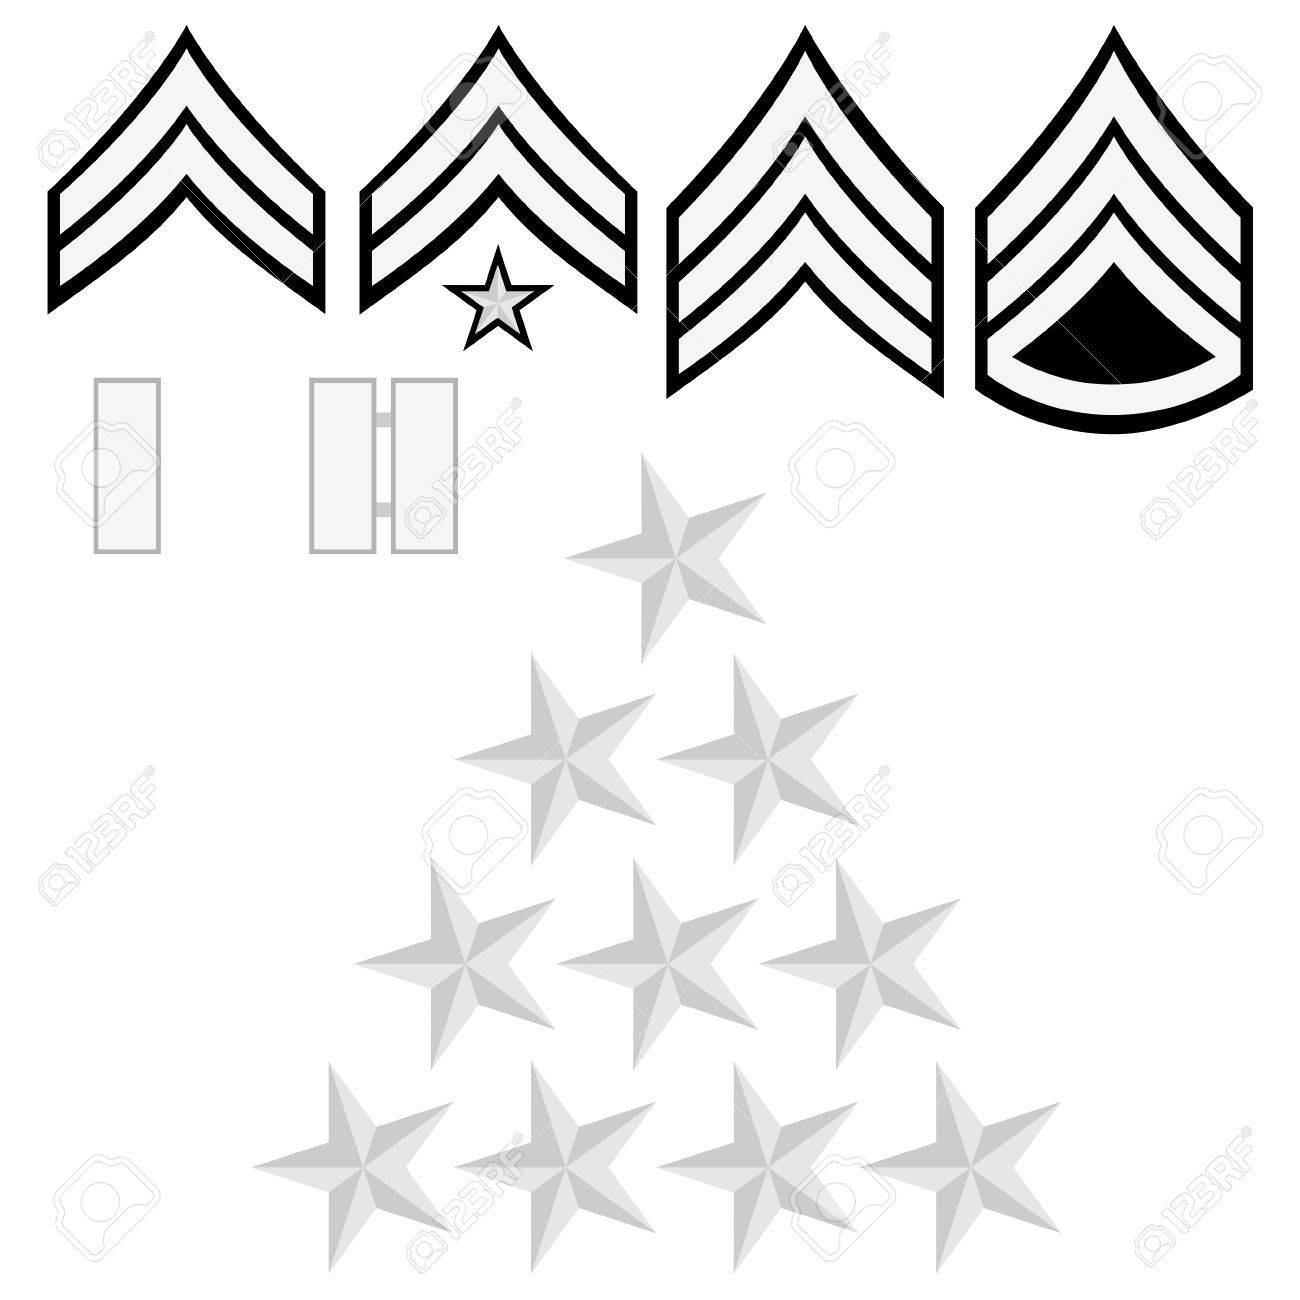 Law Enforcement Ranks >> Ranks And Insignia Of The Police Of The World Illustration On